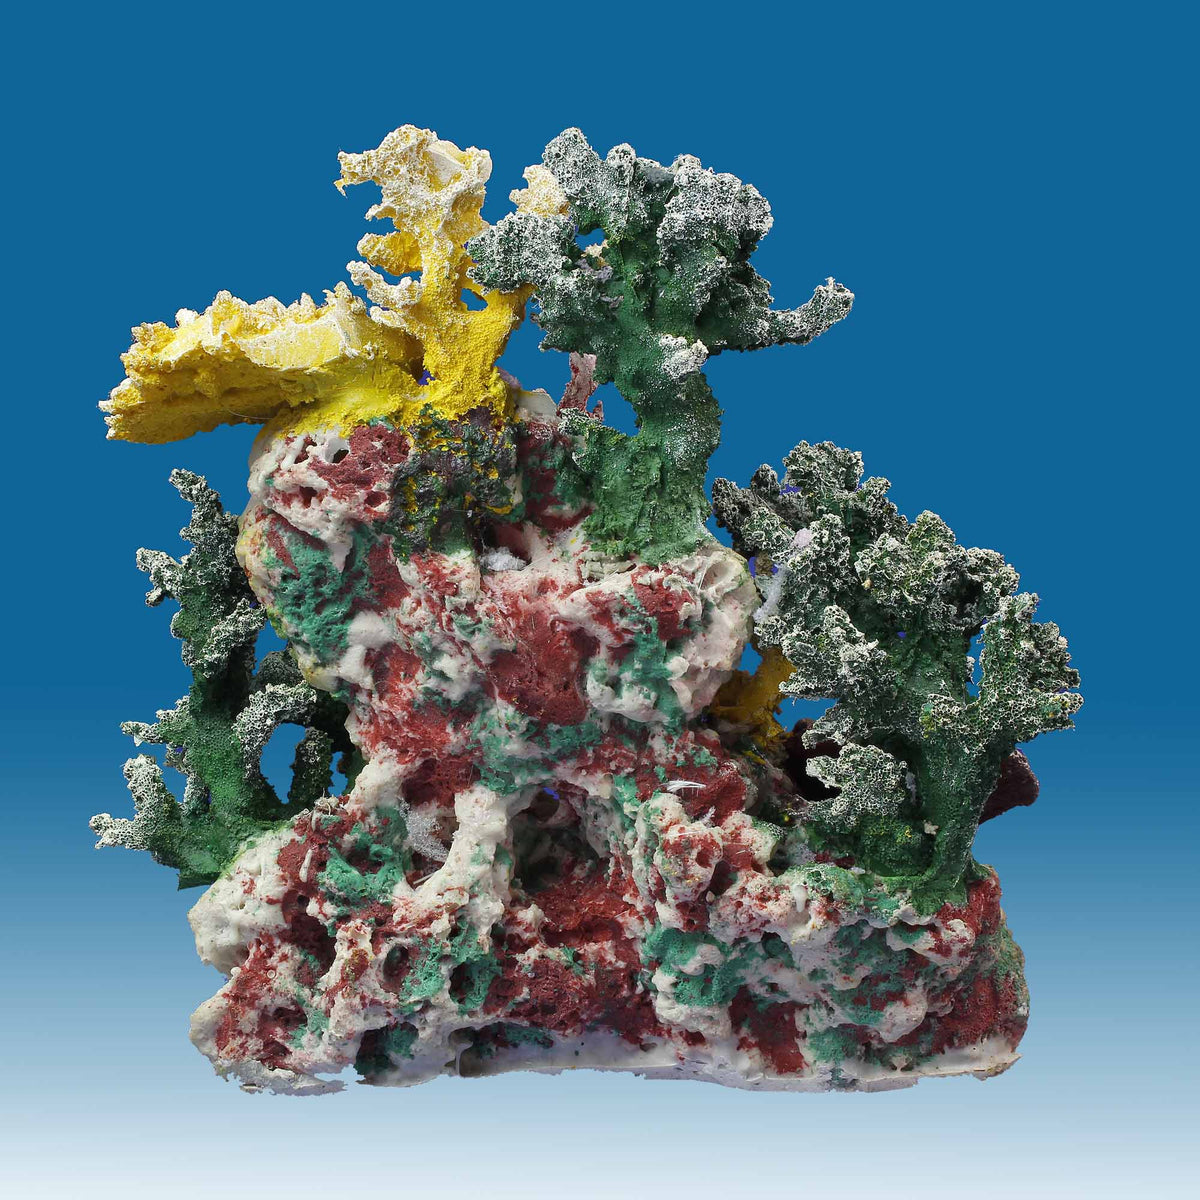 DM057 Small Coral Reef Tank Décor For Salt Water Fish